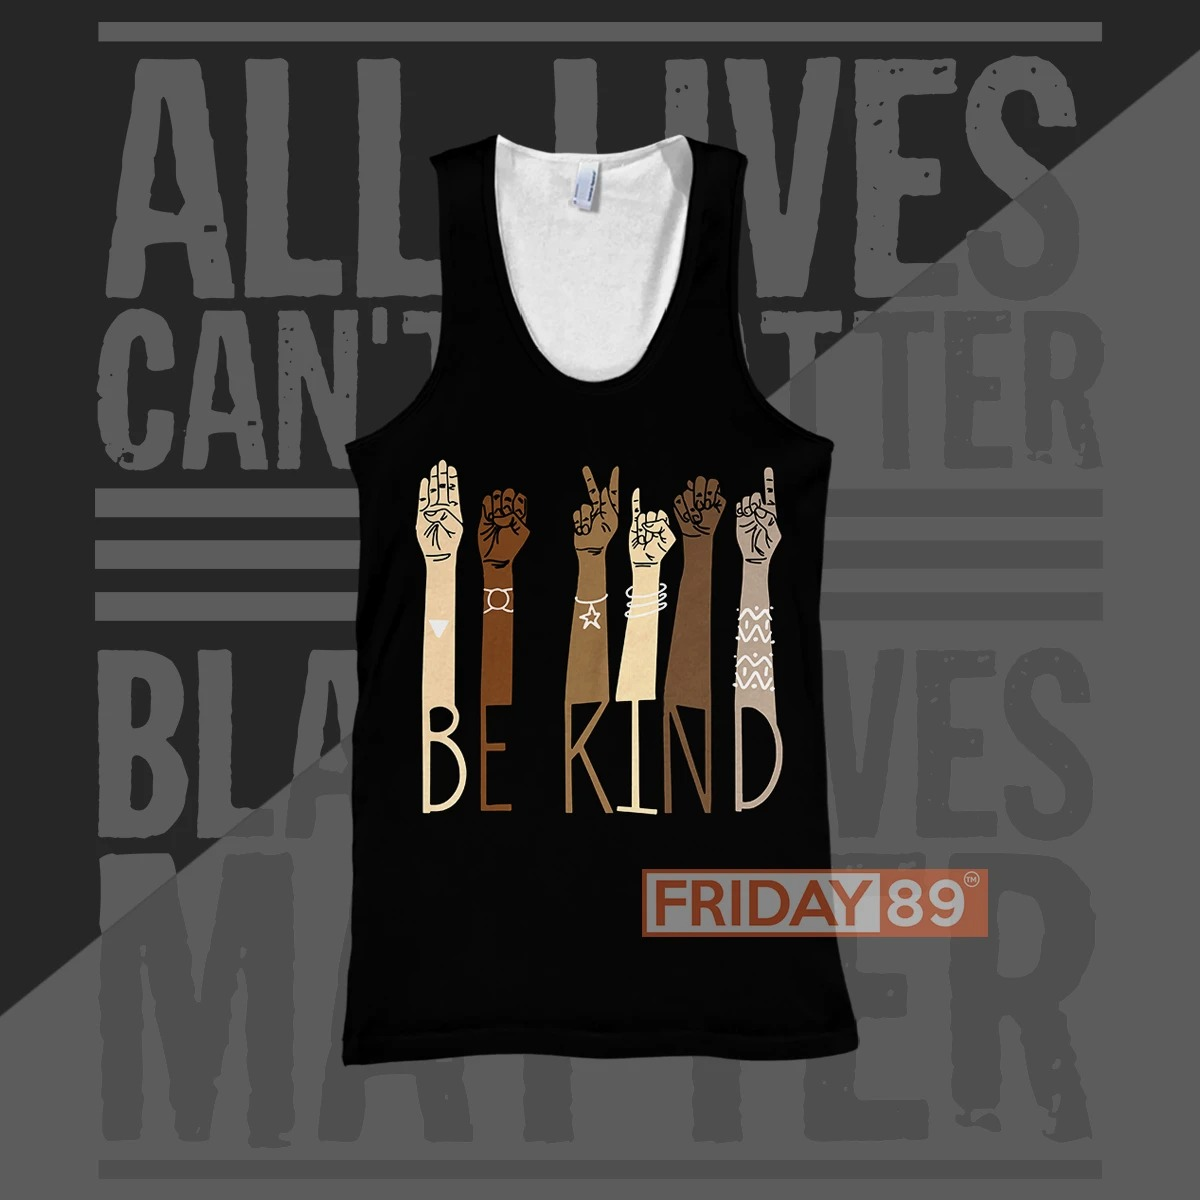 Be kind all lives can't matter until 3d print hoodie 9